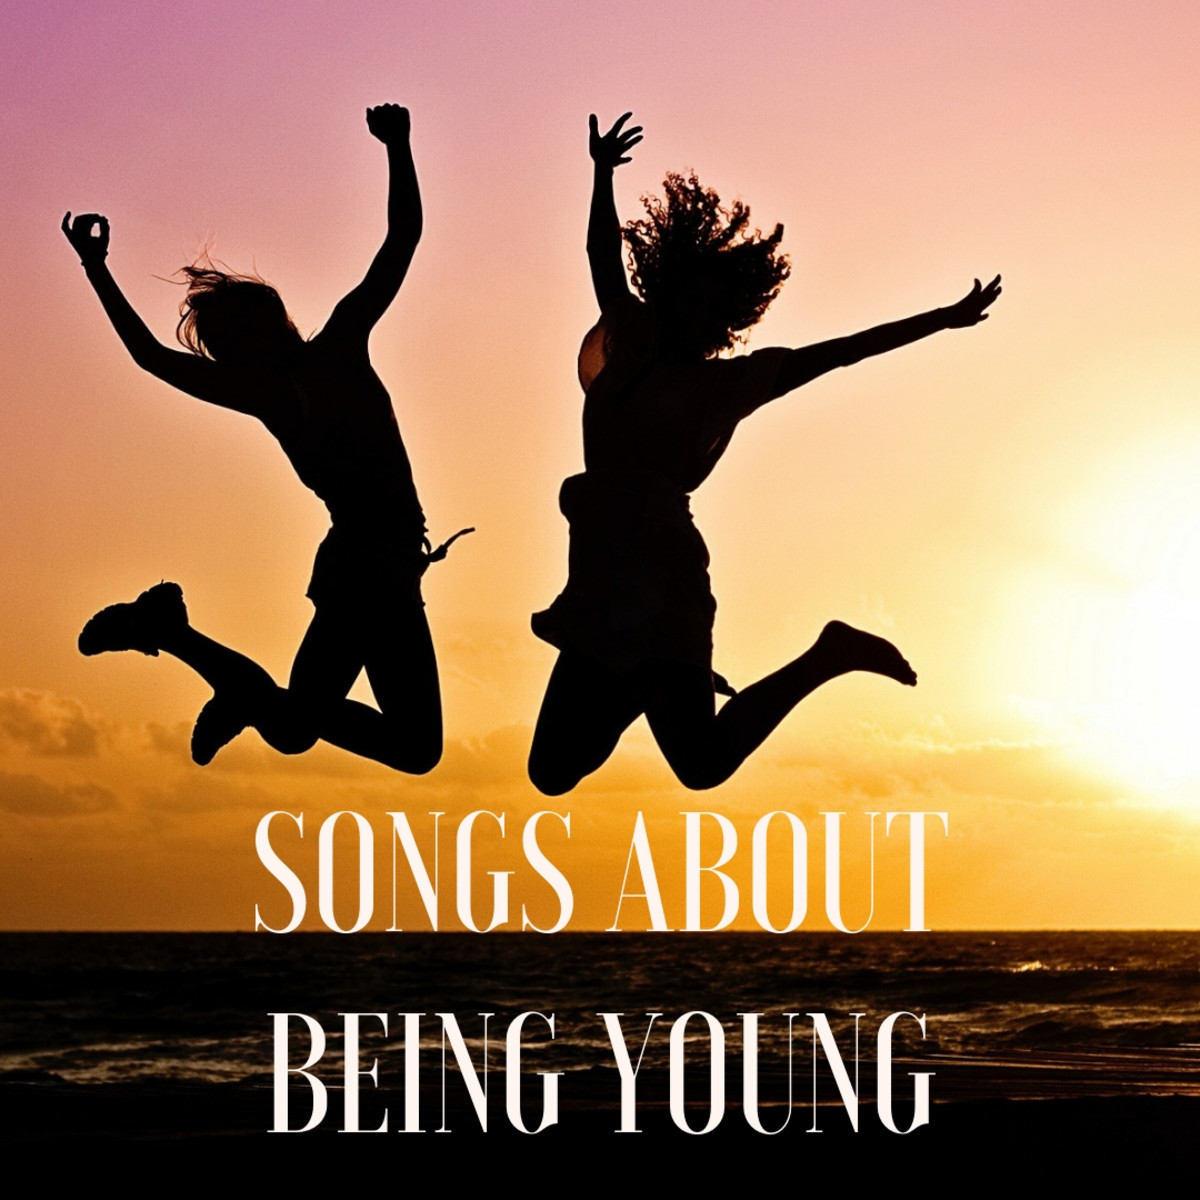 83 Songs About Being Young